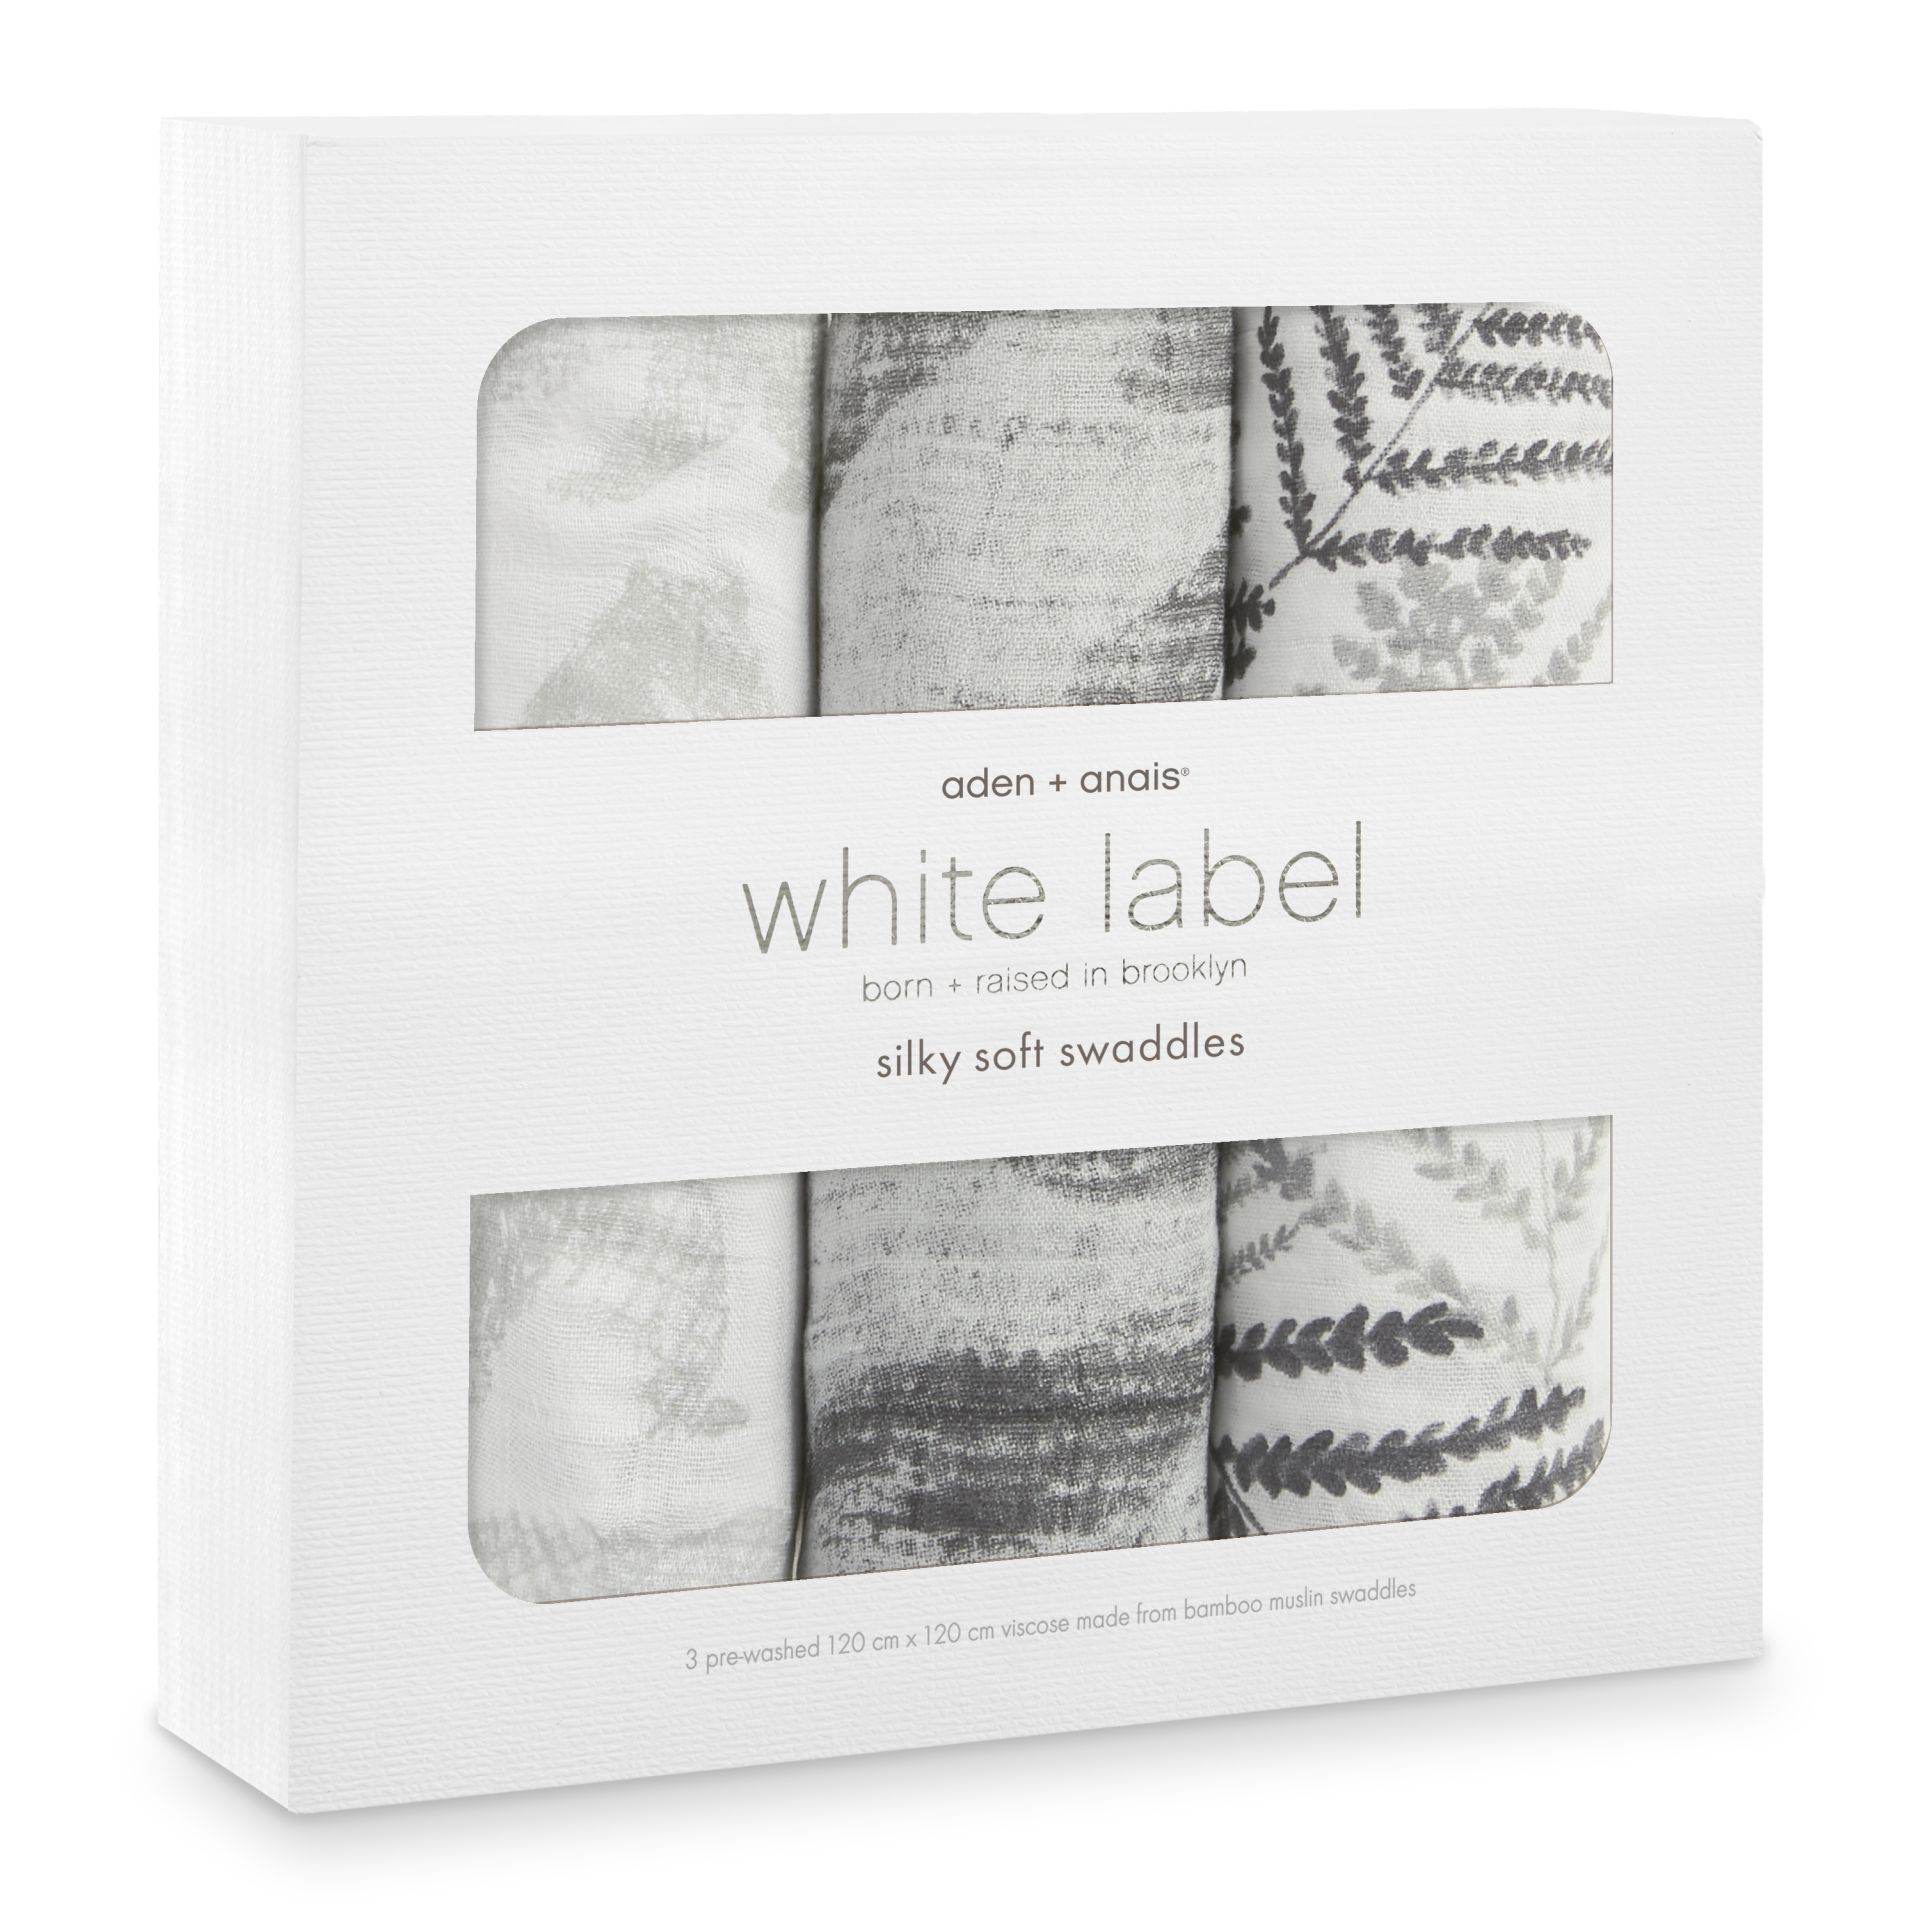 aden+anais White Label Silky Soft Swaddles, Pack of 3 2018 foragers ...